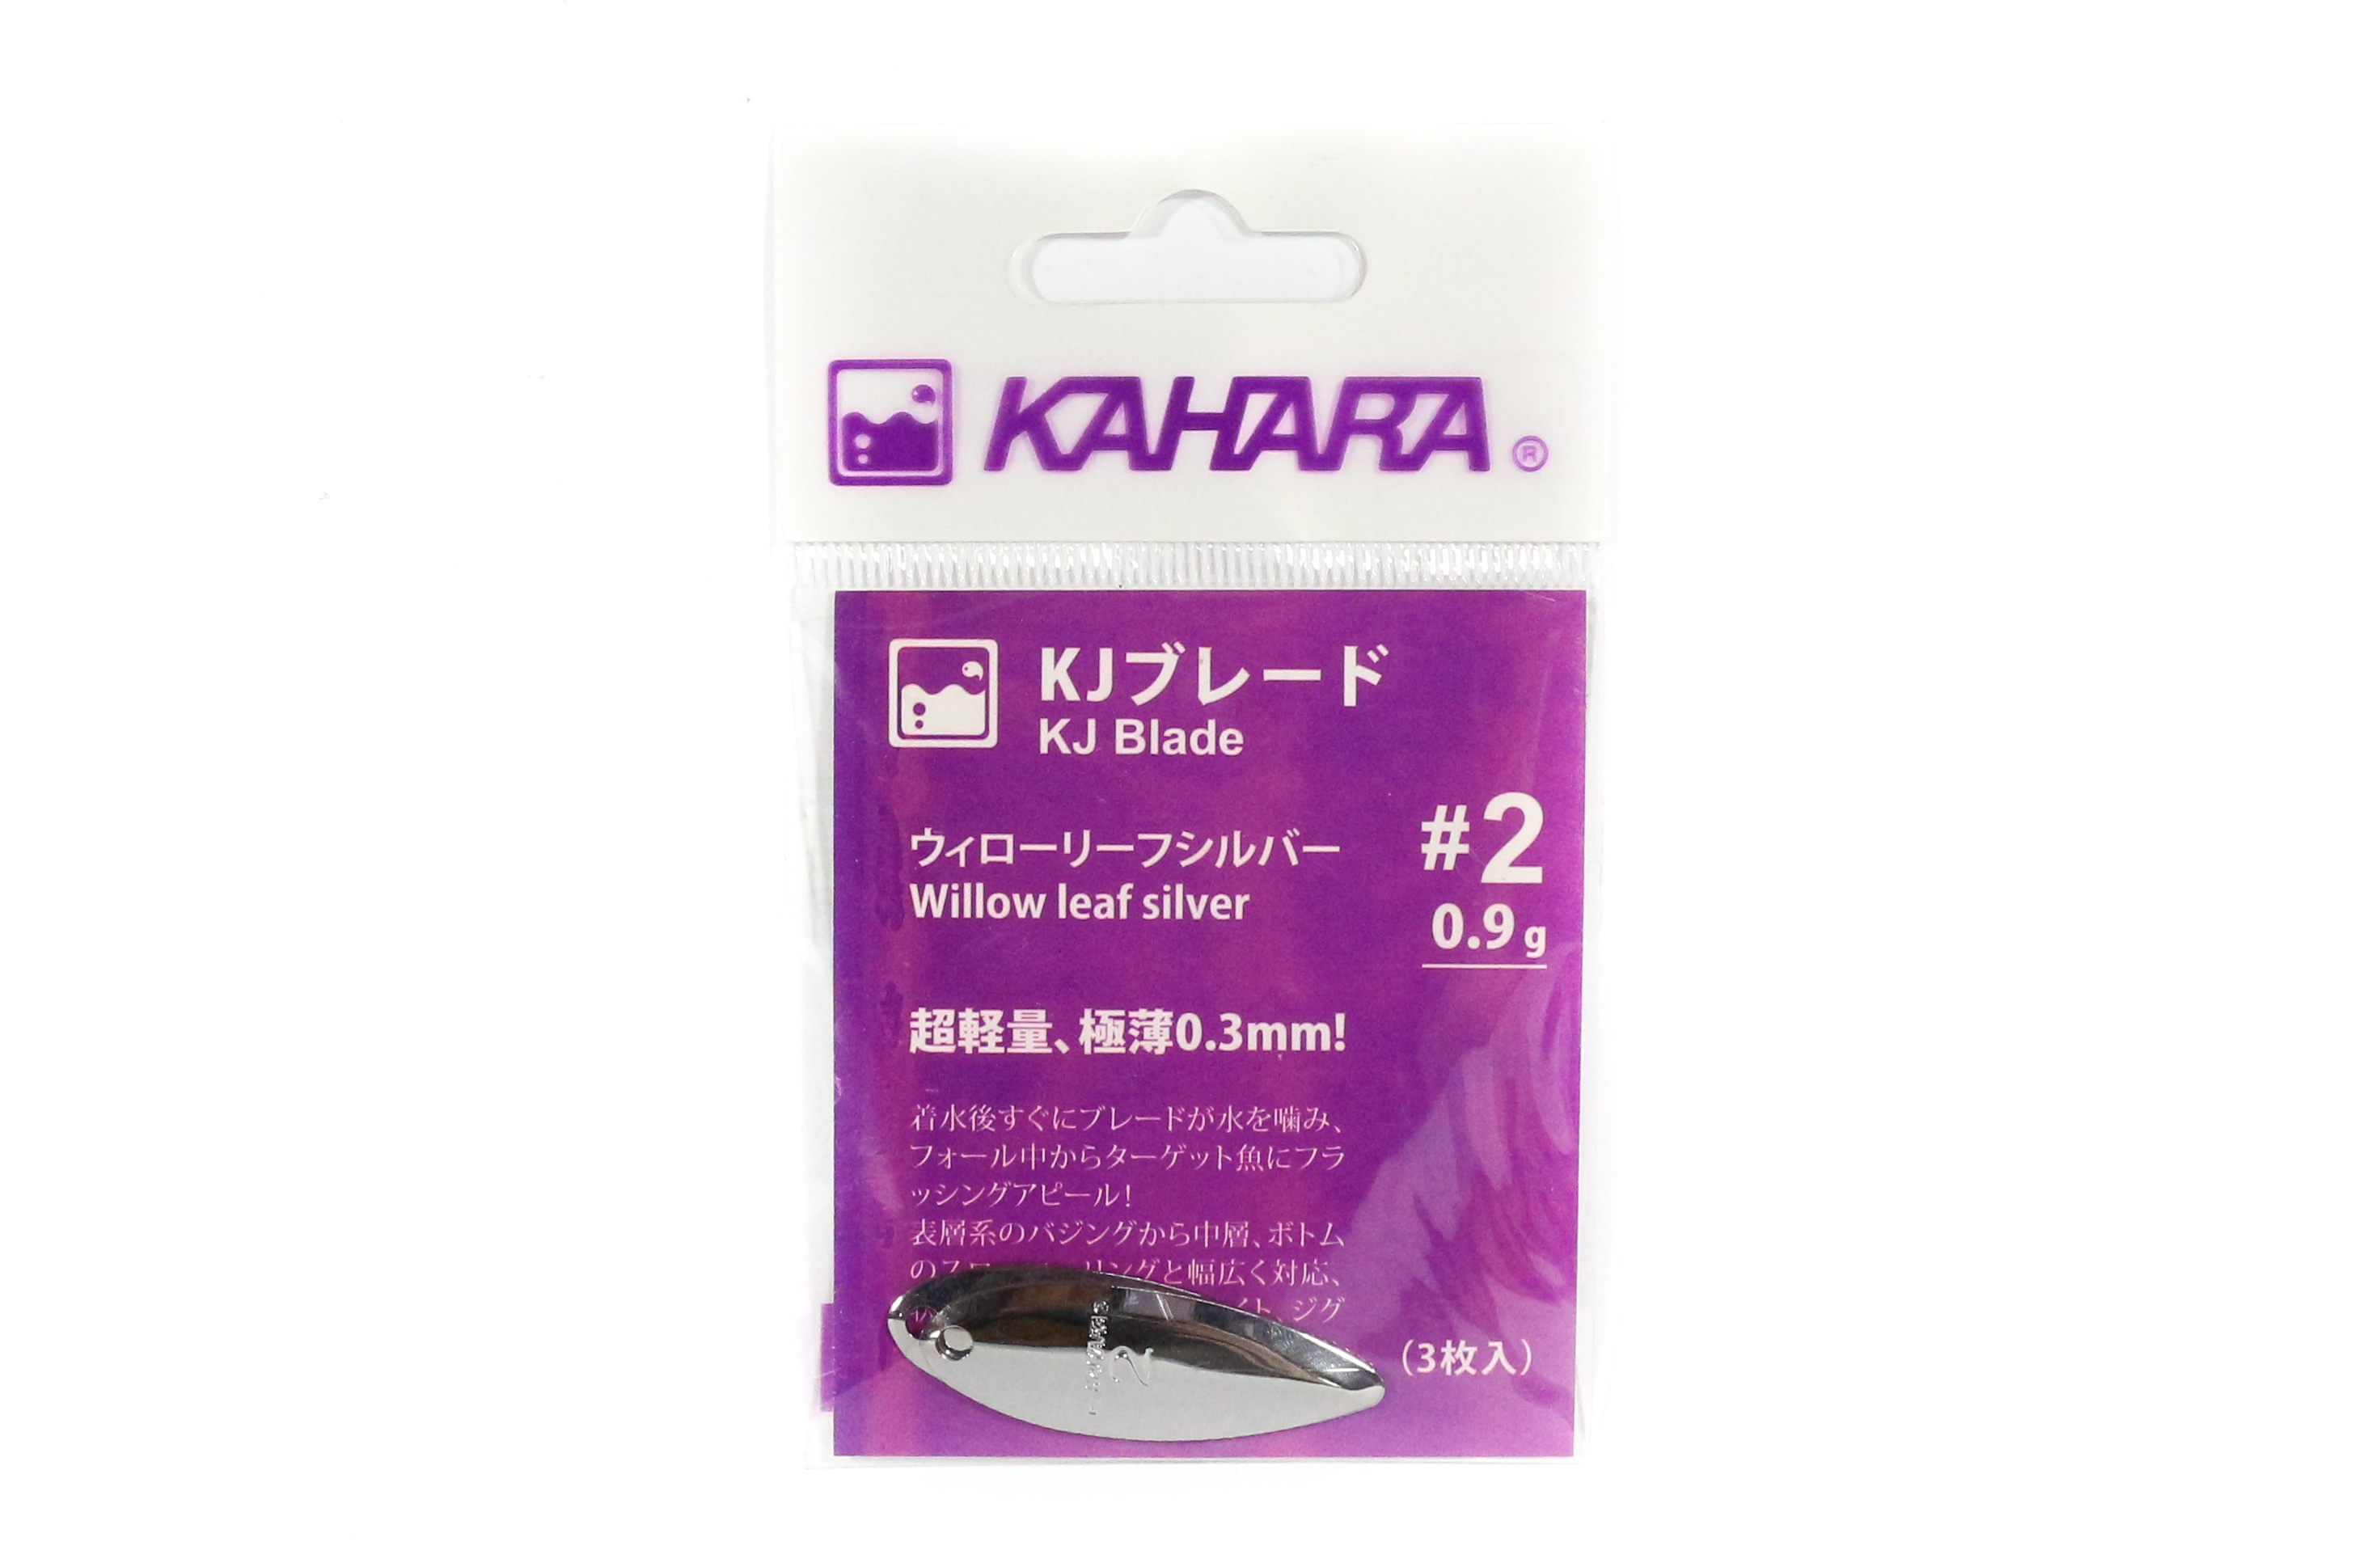 Kahara Lure Leaf Willow Blade Silver Size 2 (3349)